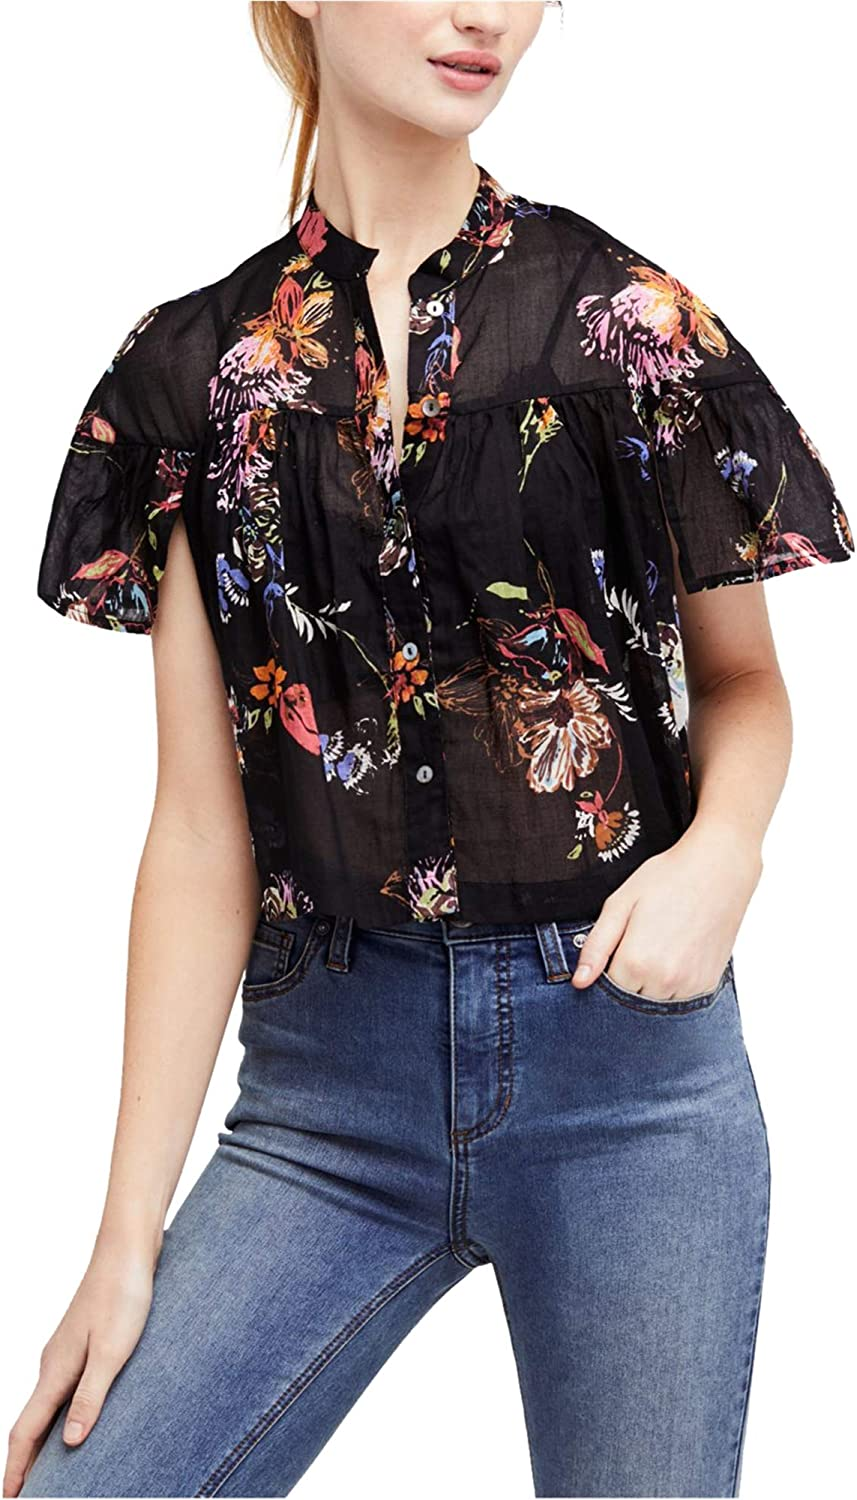 Free People Women's Sweet Escape Sheer Button-Down Blouse